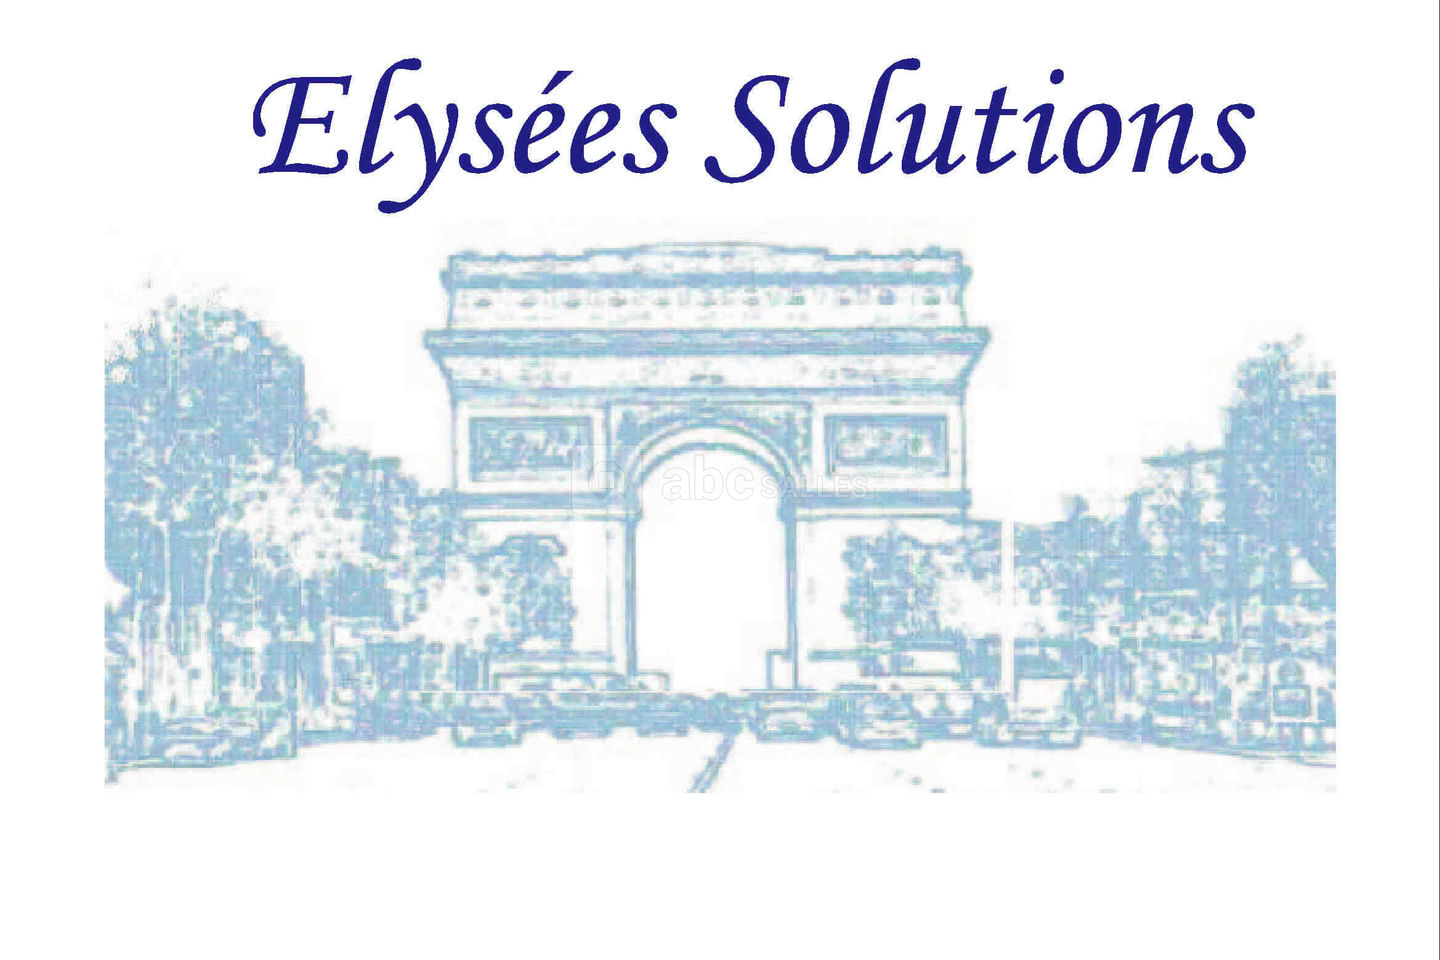 Elysees Solutions - Senlis